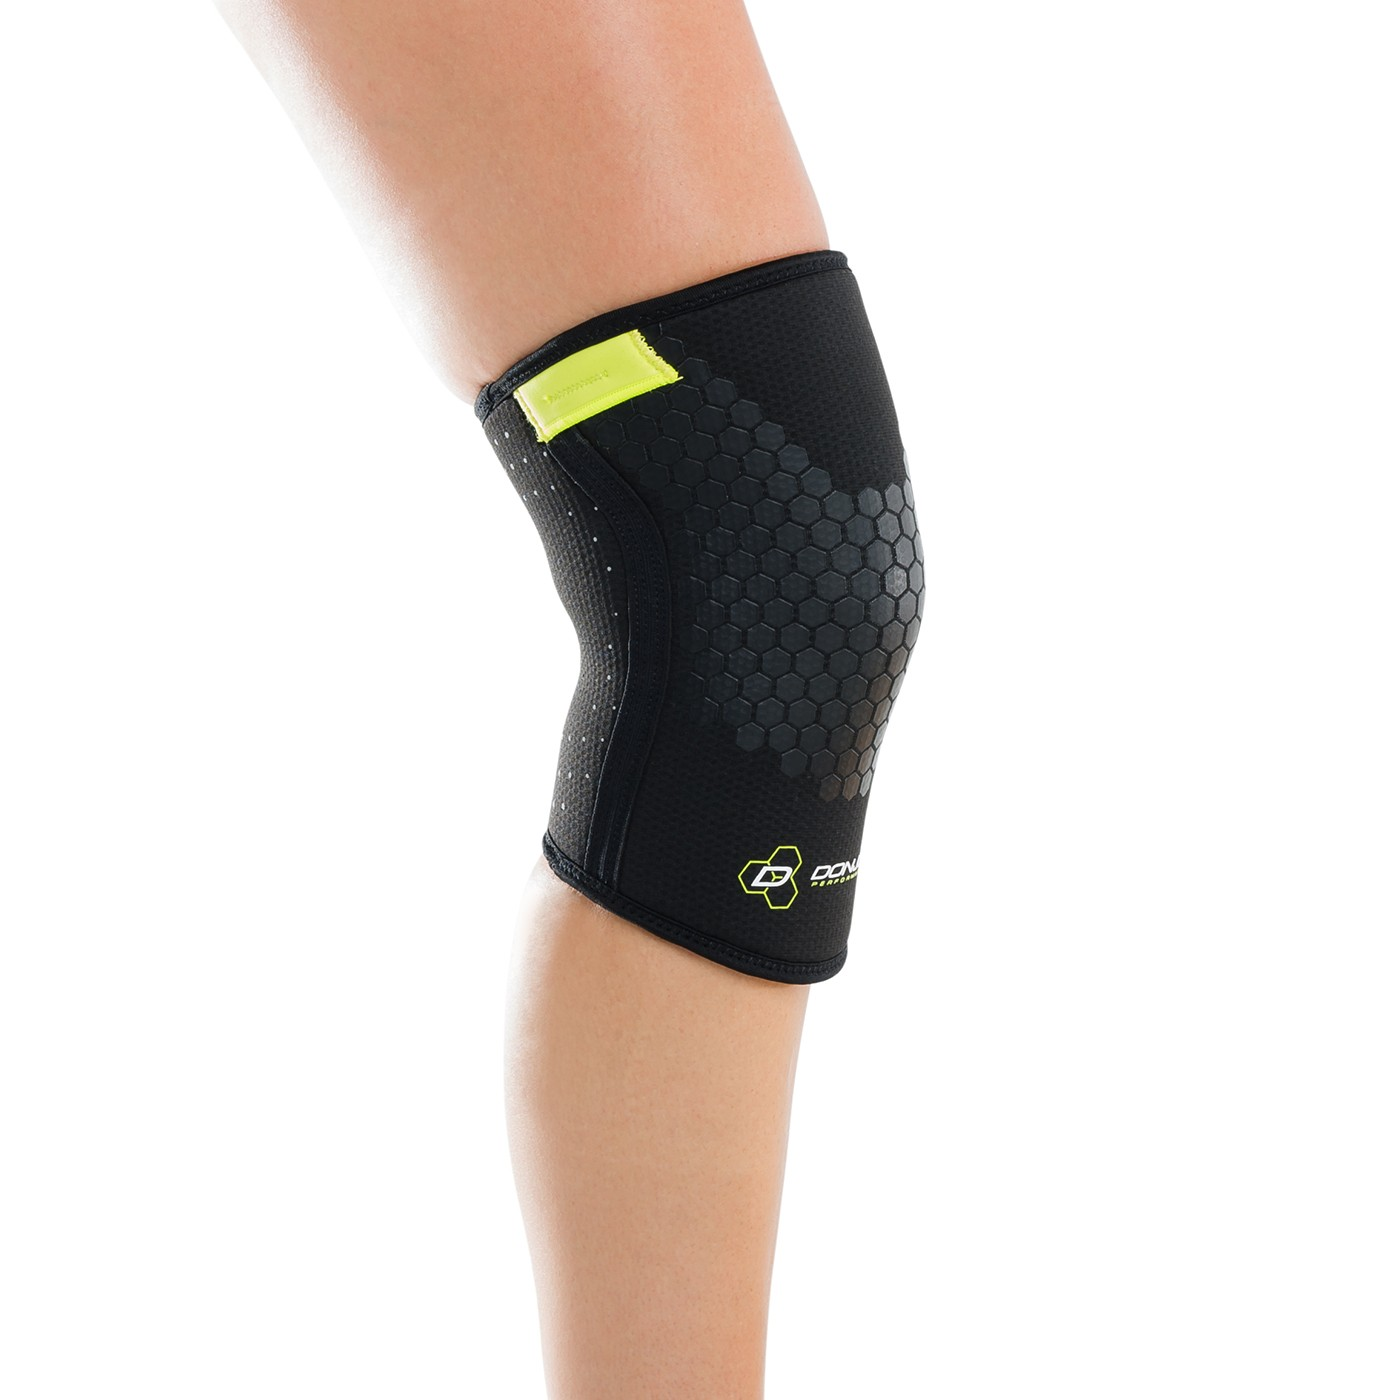 Anaform Power Knee Sleeve - On Skin - Front